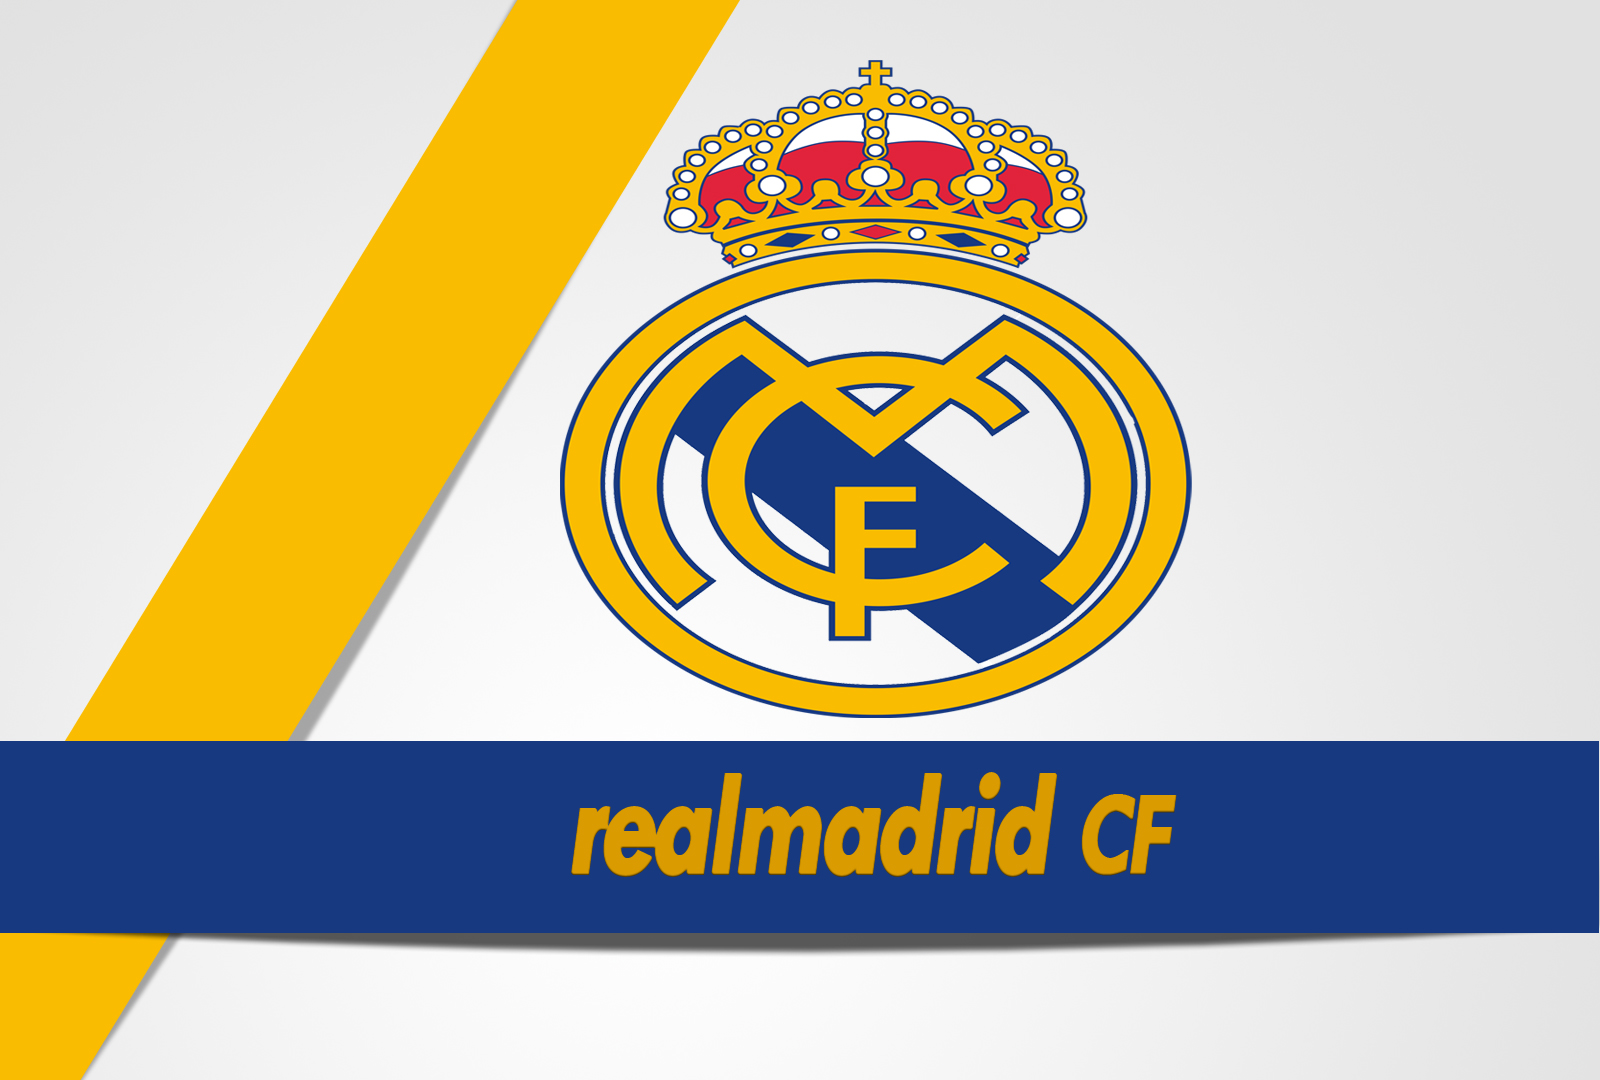 Real madrid cf logo hd desktop wallpapers